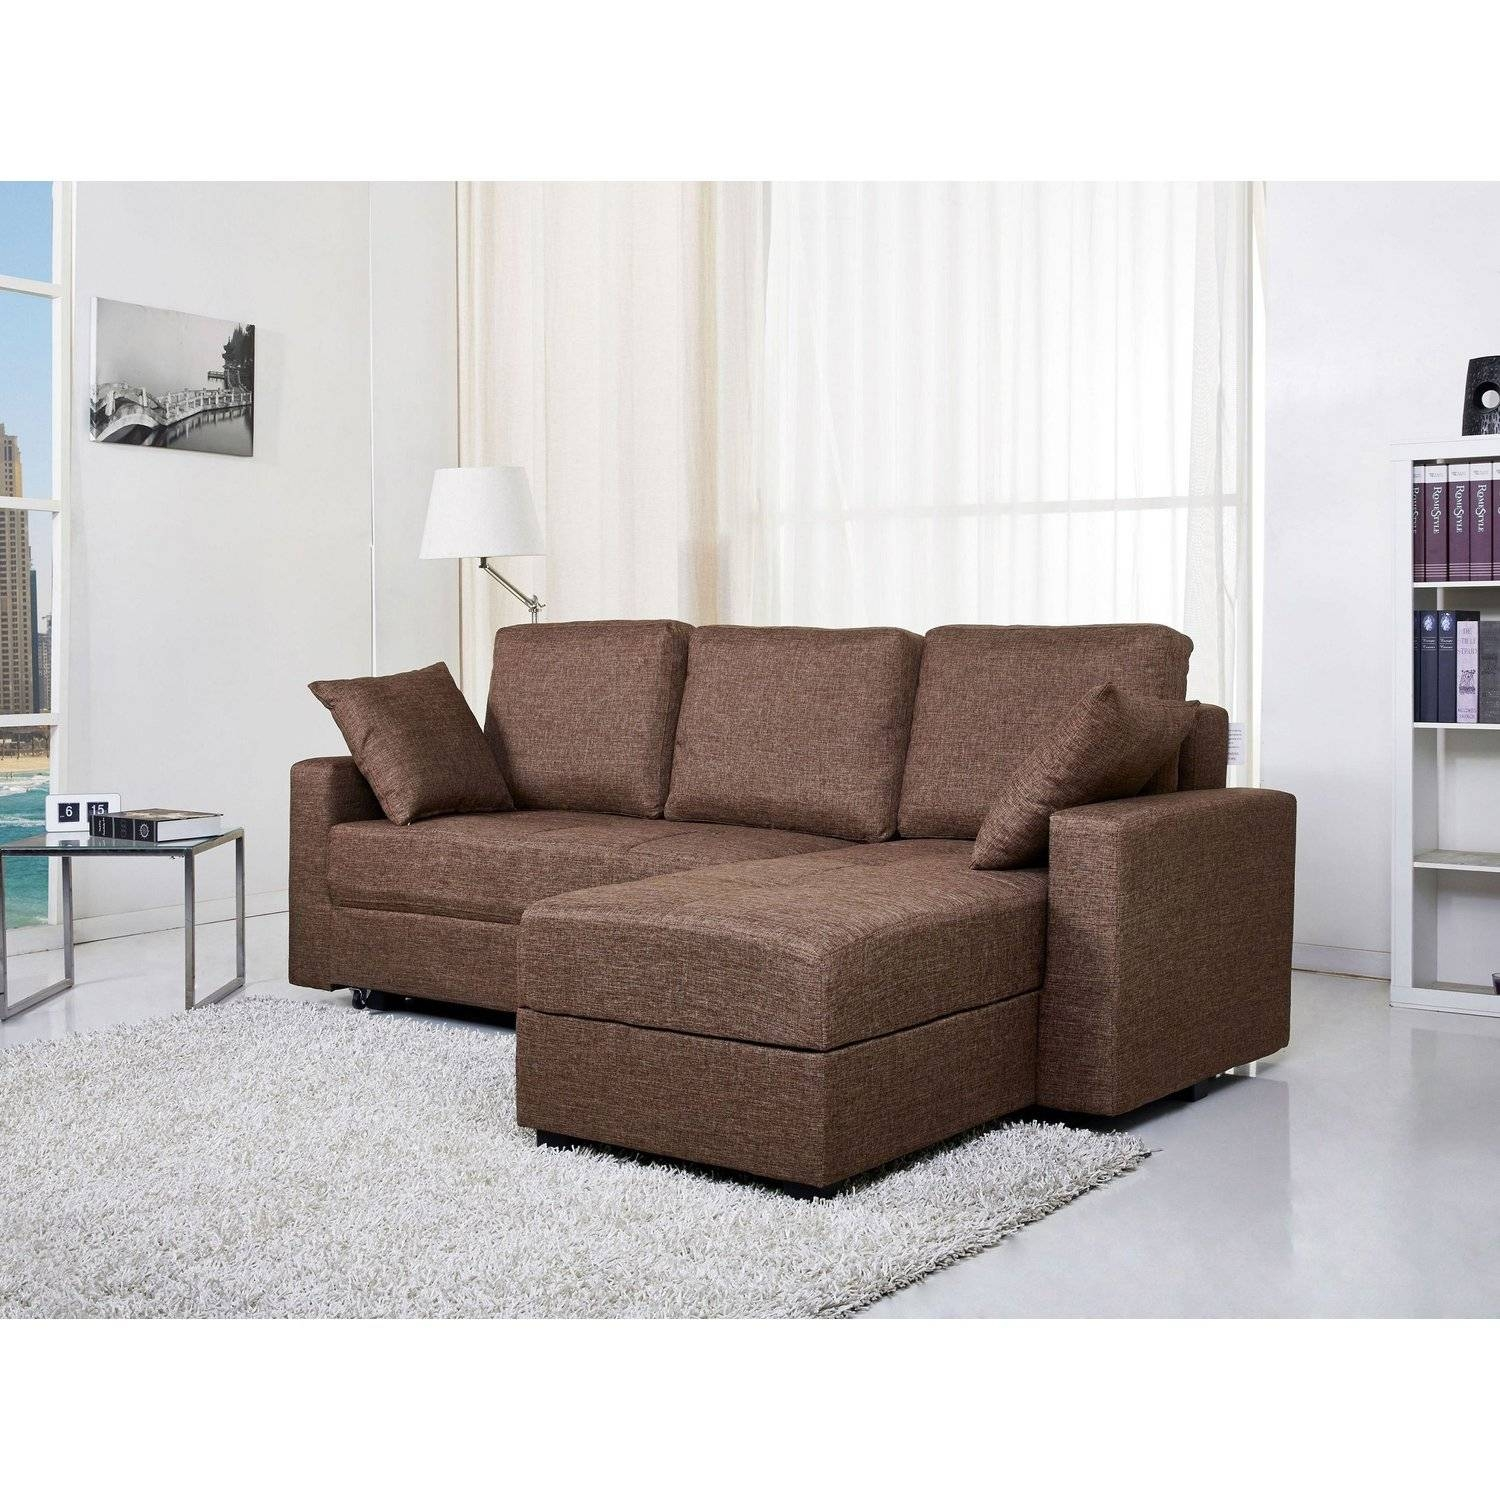 Furniture: Sofa Bed Ikea | Convertible Couch | Sectional Sleeper Sofa for Castro Convertible Couches (Image 8 of 15)